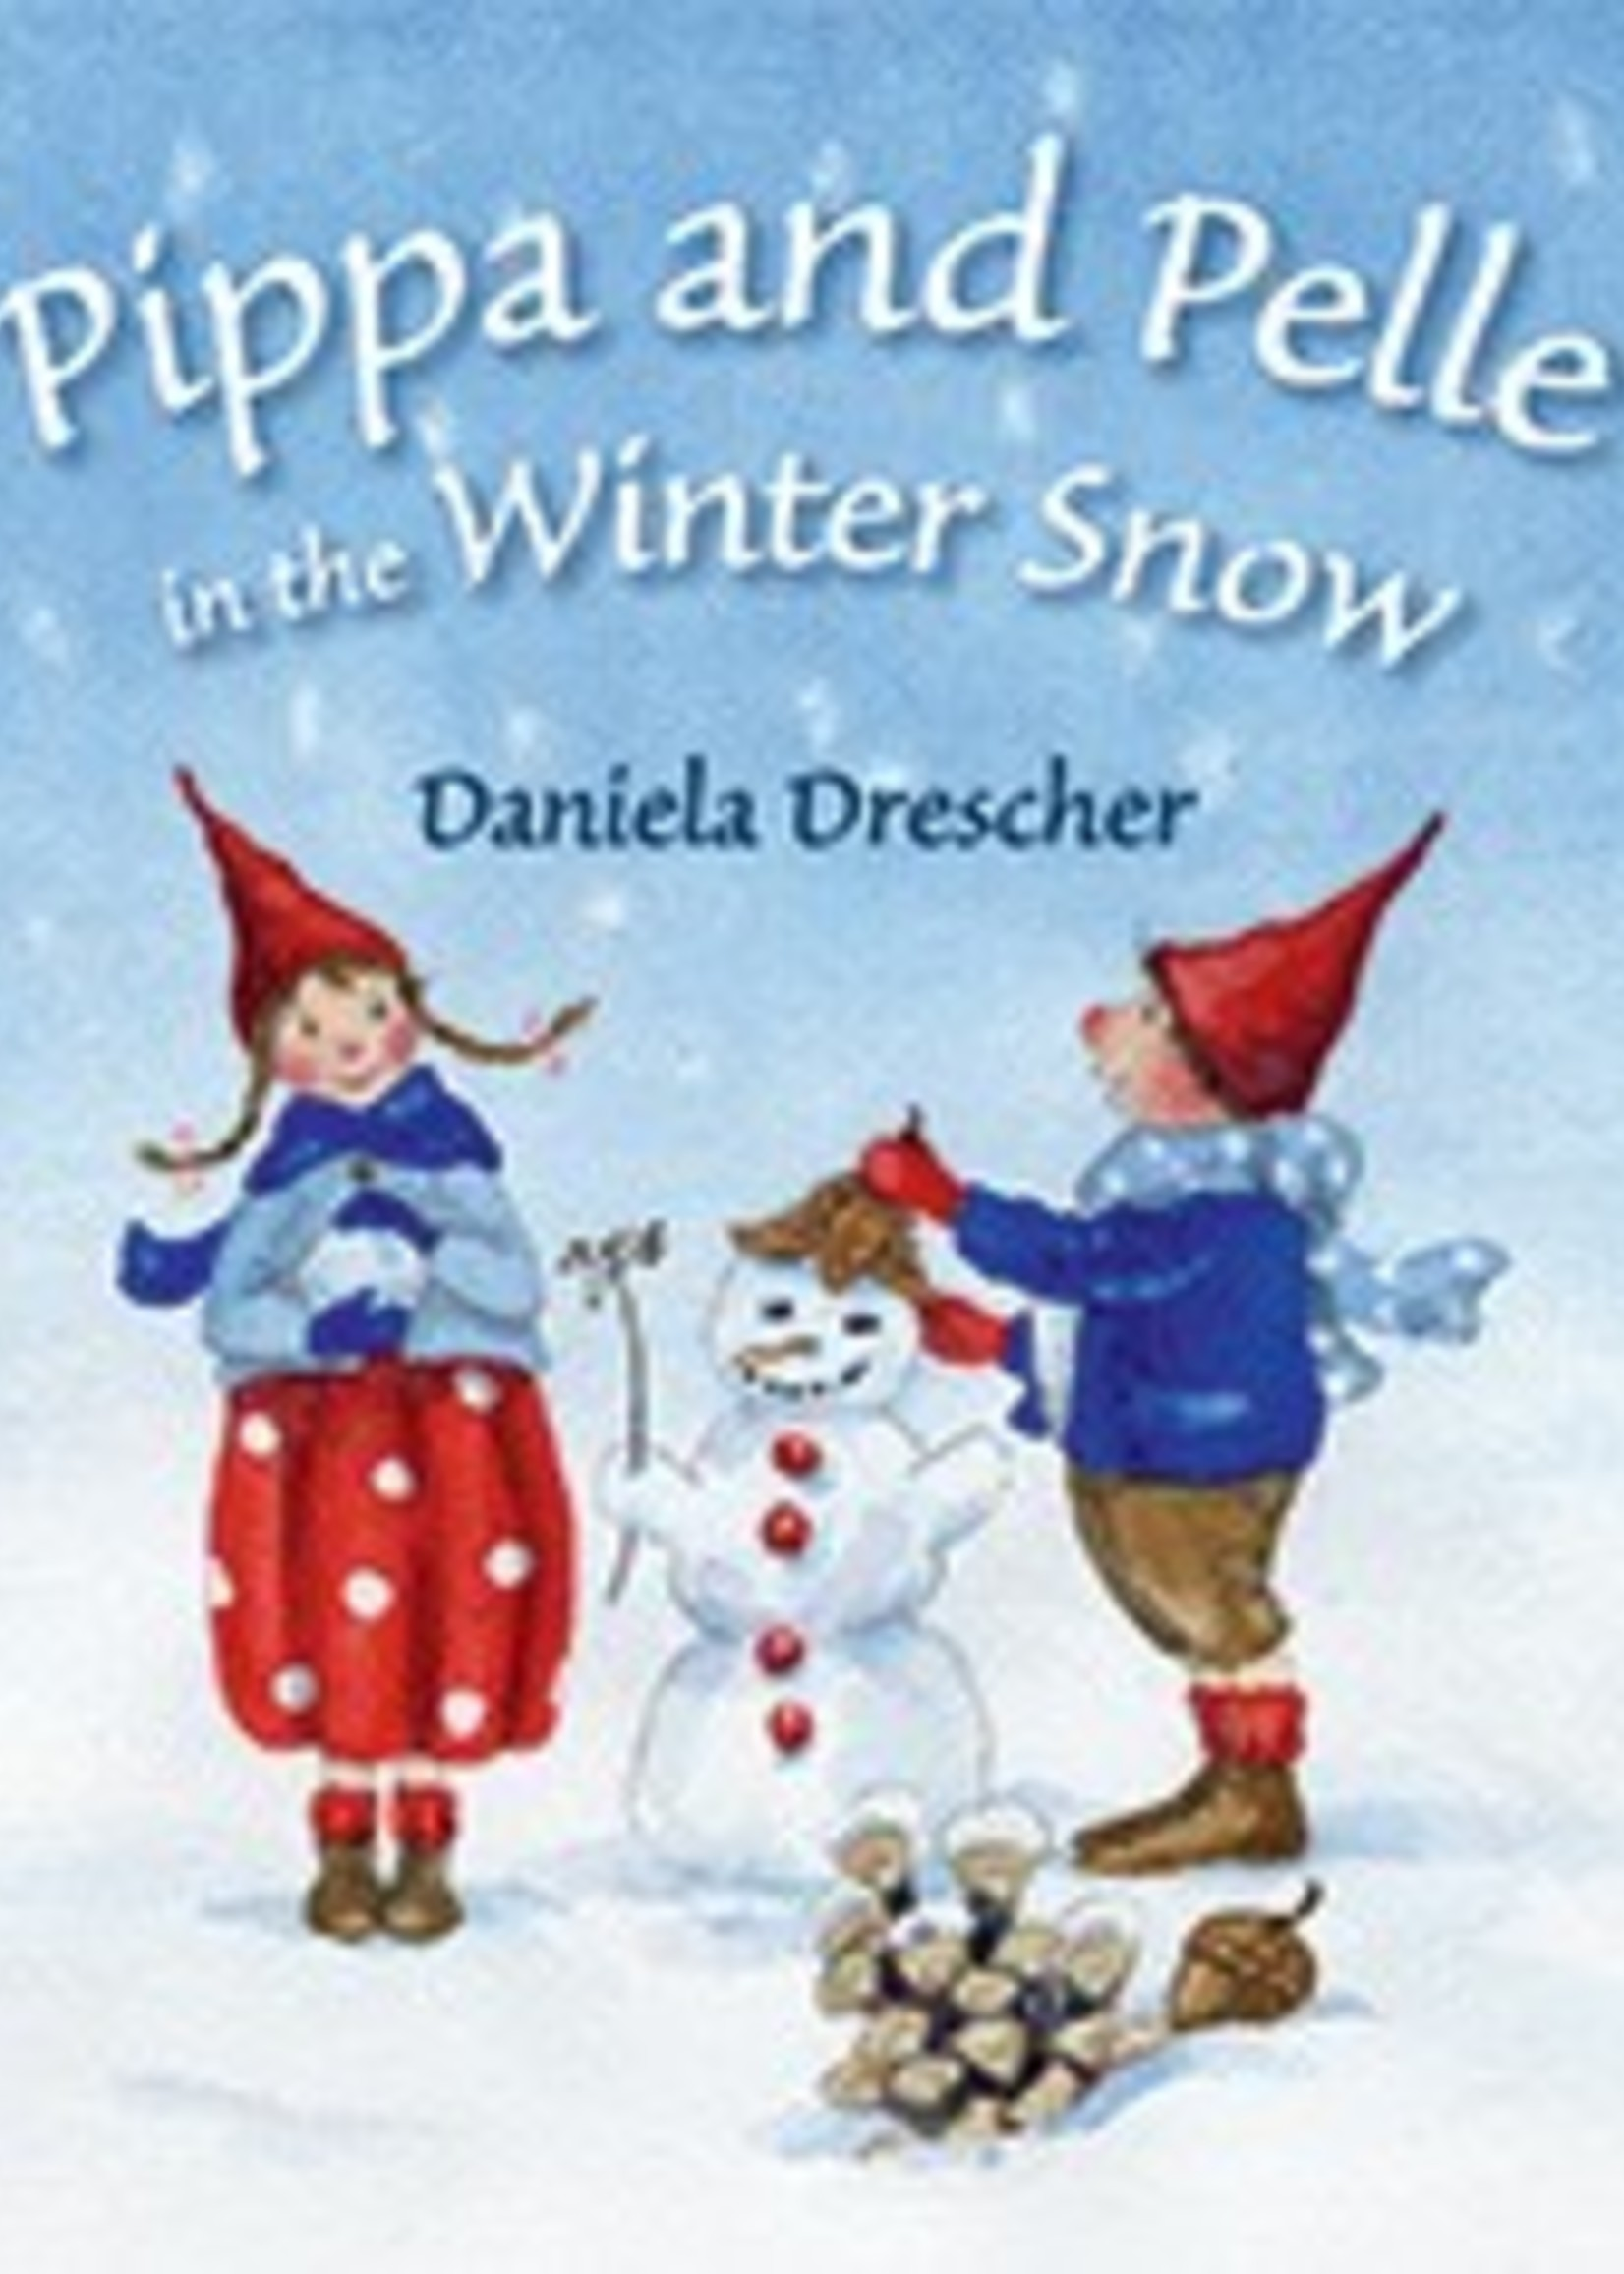 Pippa and Pelle in the Winter Snow - Board Book